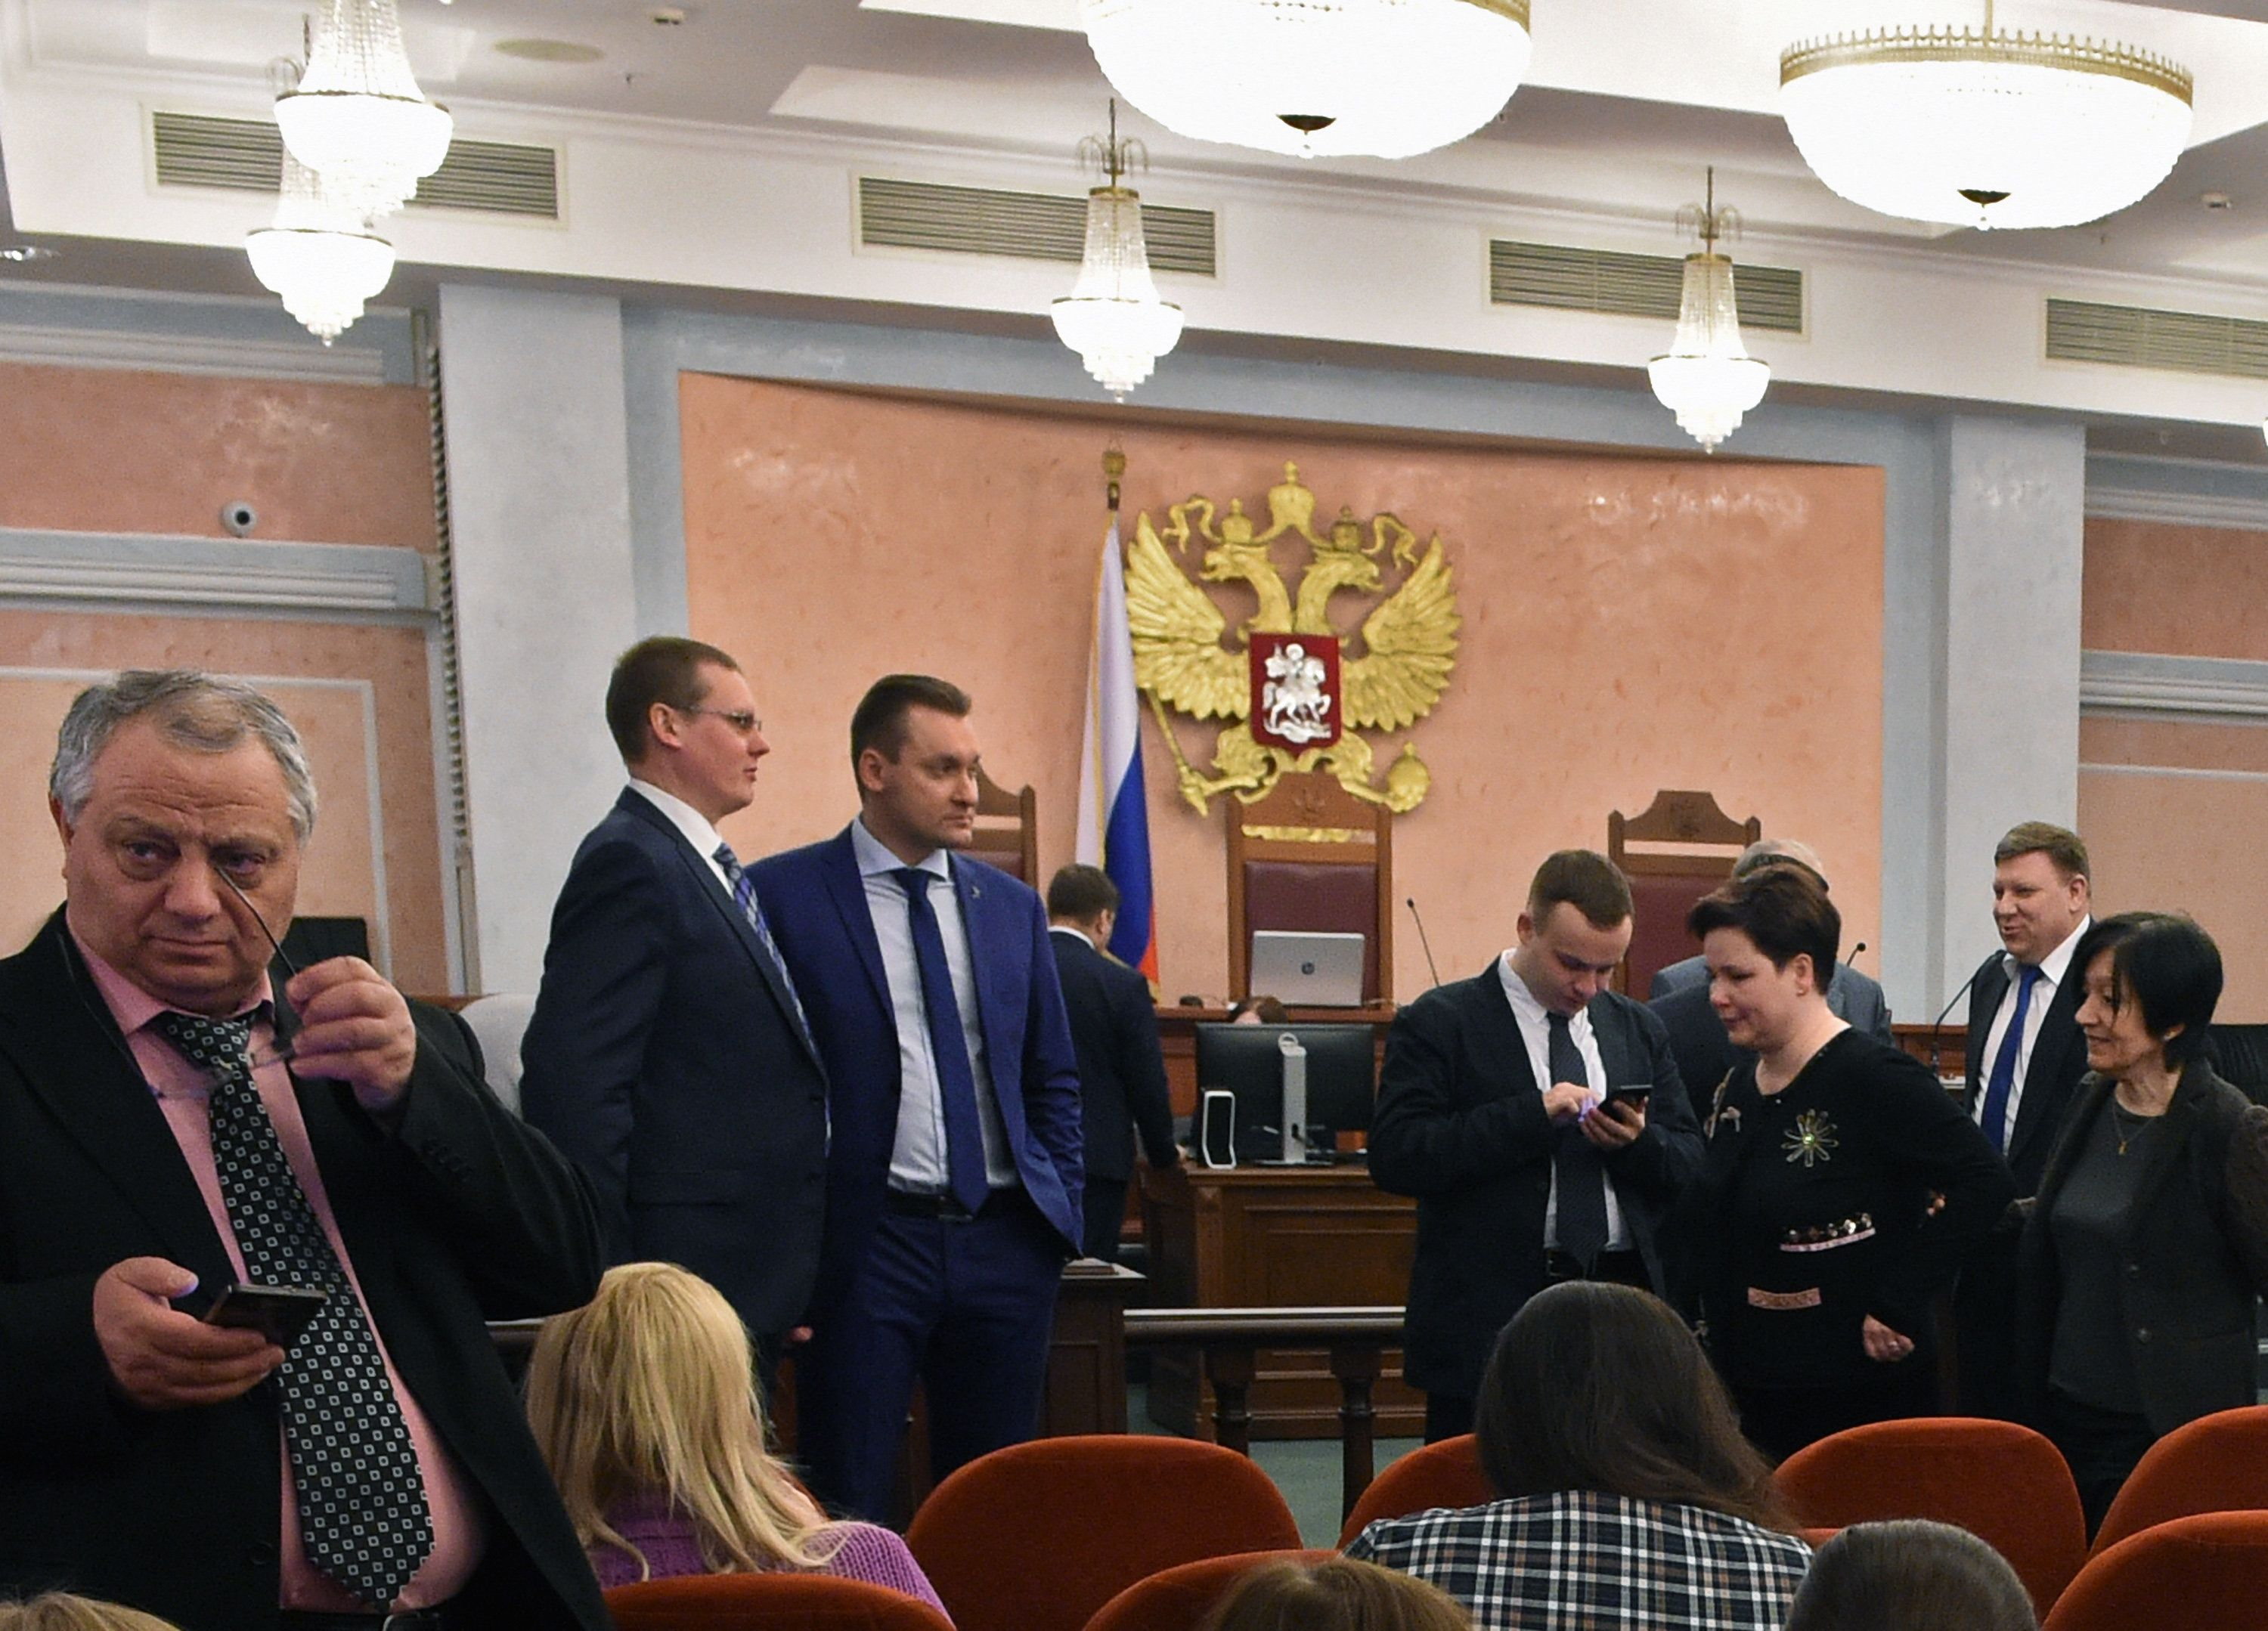 Participants attend a hearing on the justice ministry request to ban the Jehovah's Witnesses at Russia's Supreme Court in Moscow on April 20, 2017. Russia's Supreme Court on April 20 issued a ruling banning Jehovah's Witnesses after finding the group to be extremist. / AFP PHOTO / Vasily MAXIMOV        (Photo credit should read VASILY MAXIMOV/AFP/Getty Images)